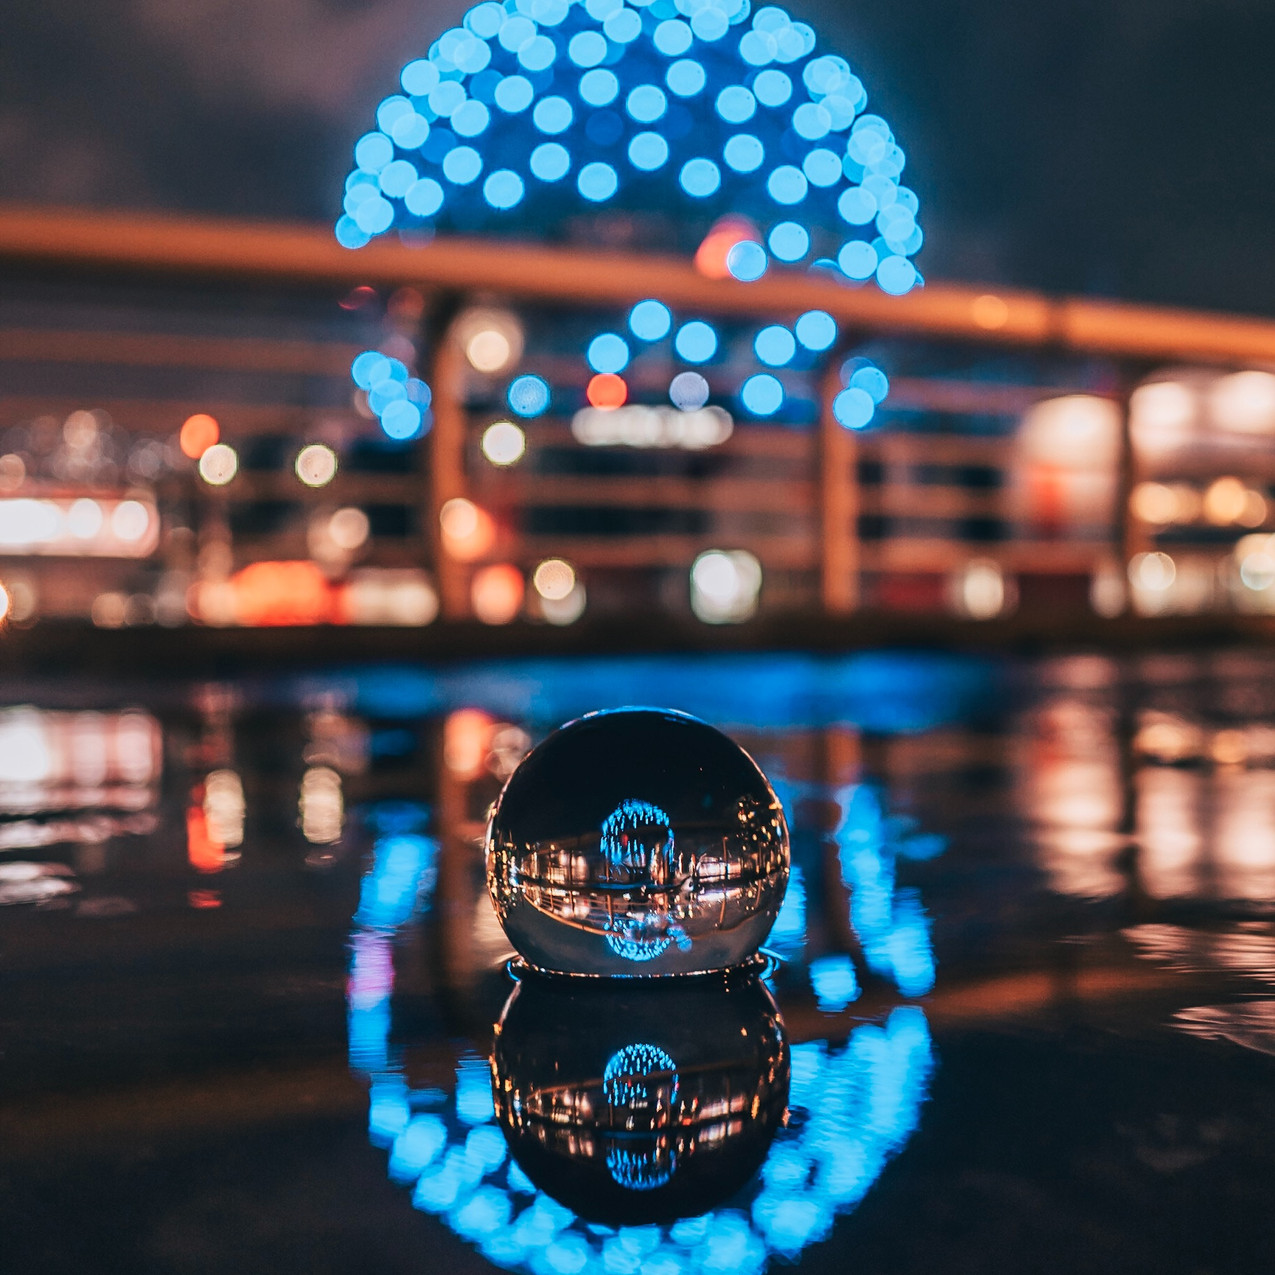 Lensball - in water